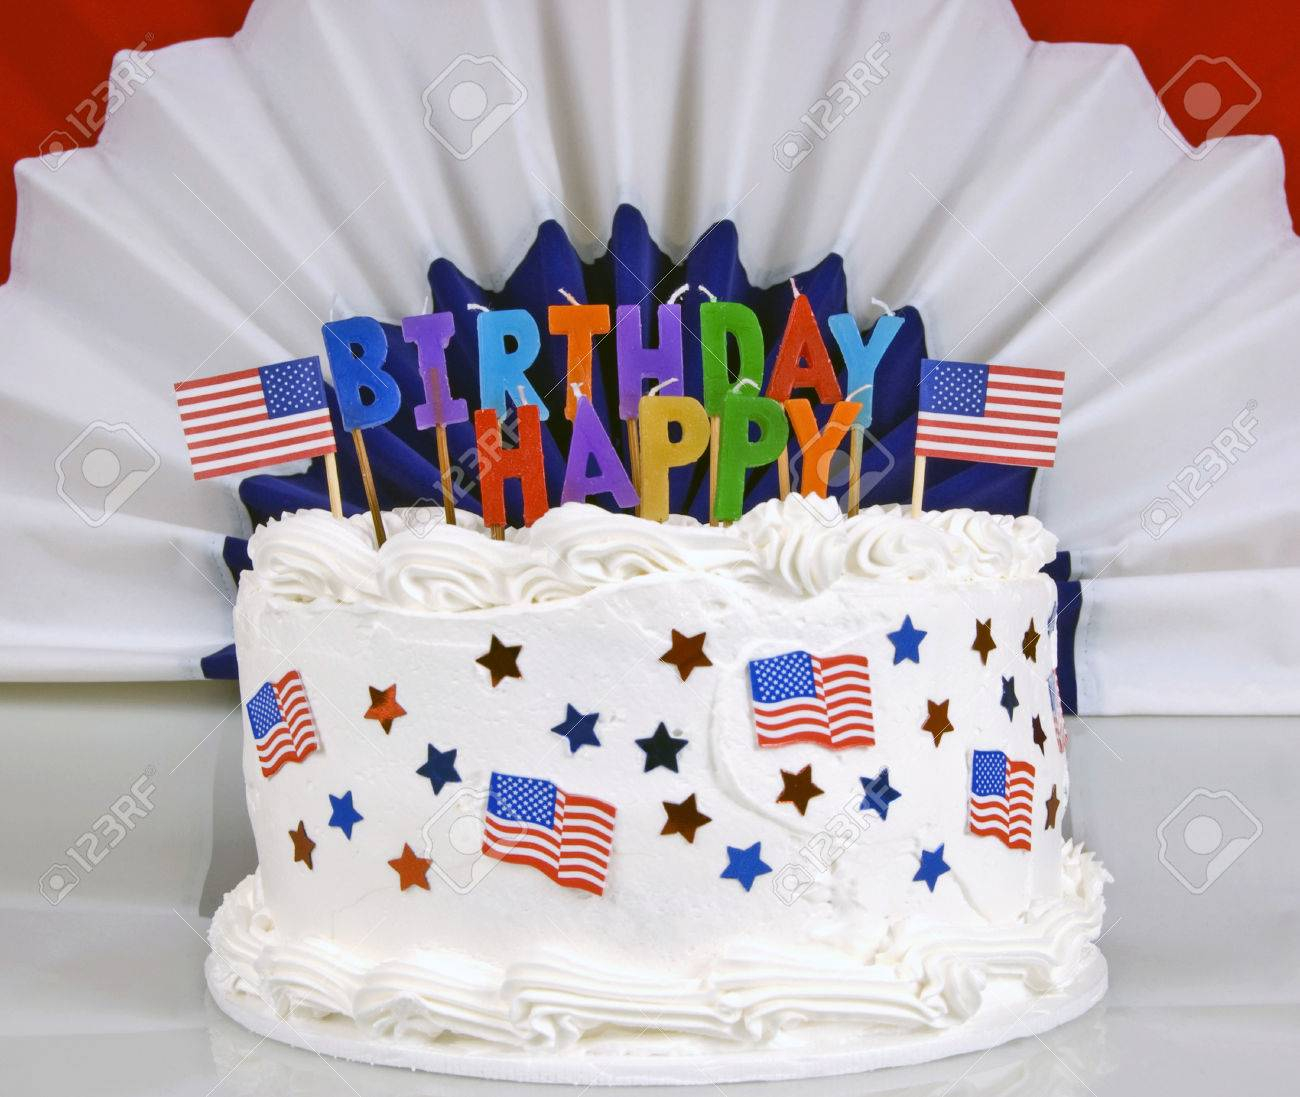 4Th Of July Birthday Cakes July 4th Birthday Cake With Patriotic Banner In Background Stock